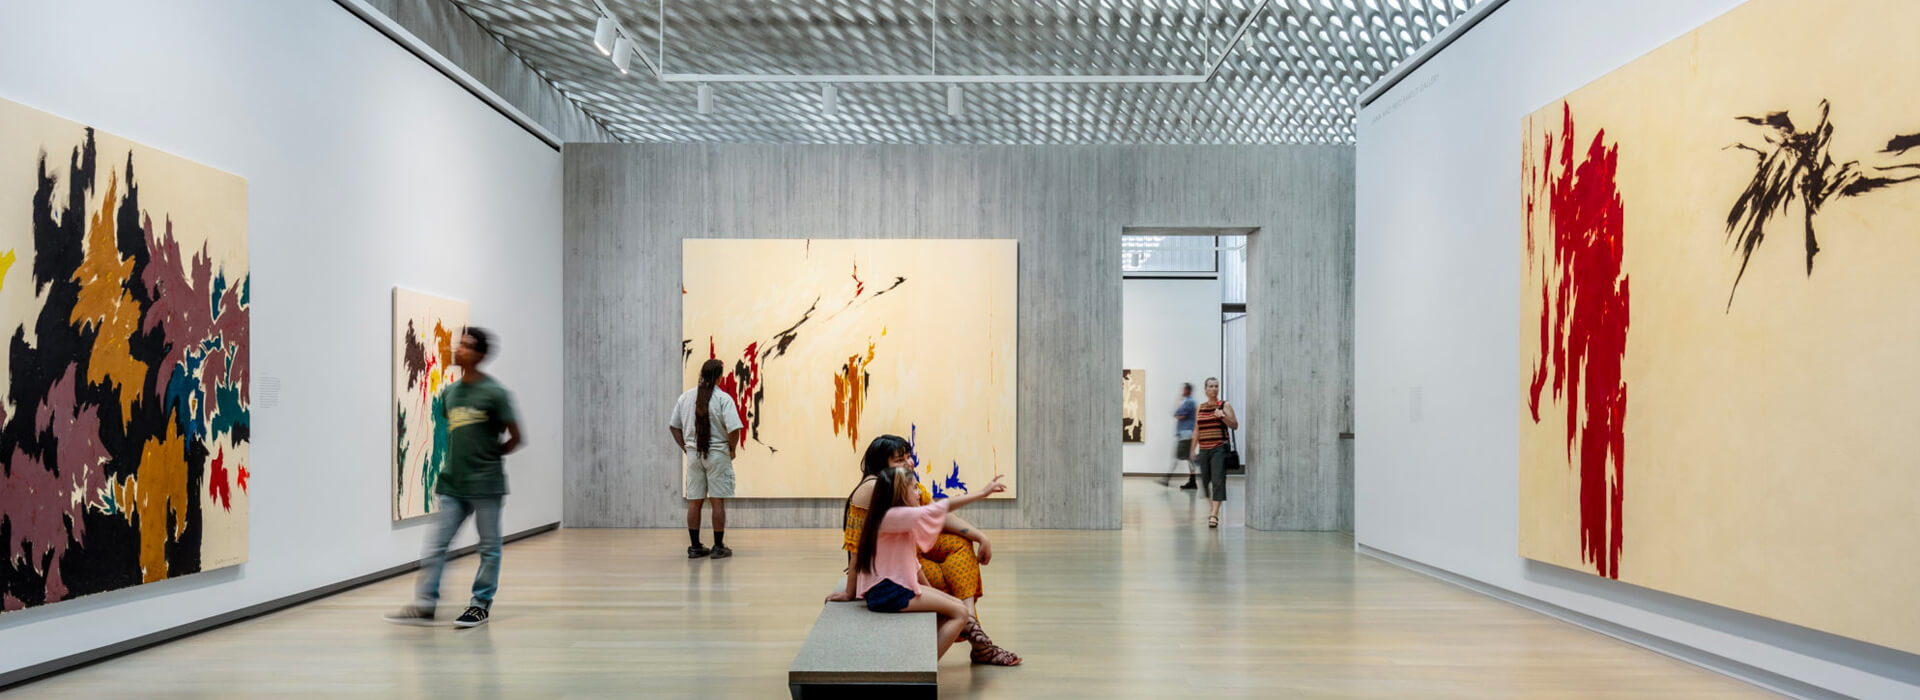 A mom and daughter sit on a bench while two men stand on the other side of the room looking at art